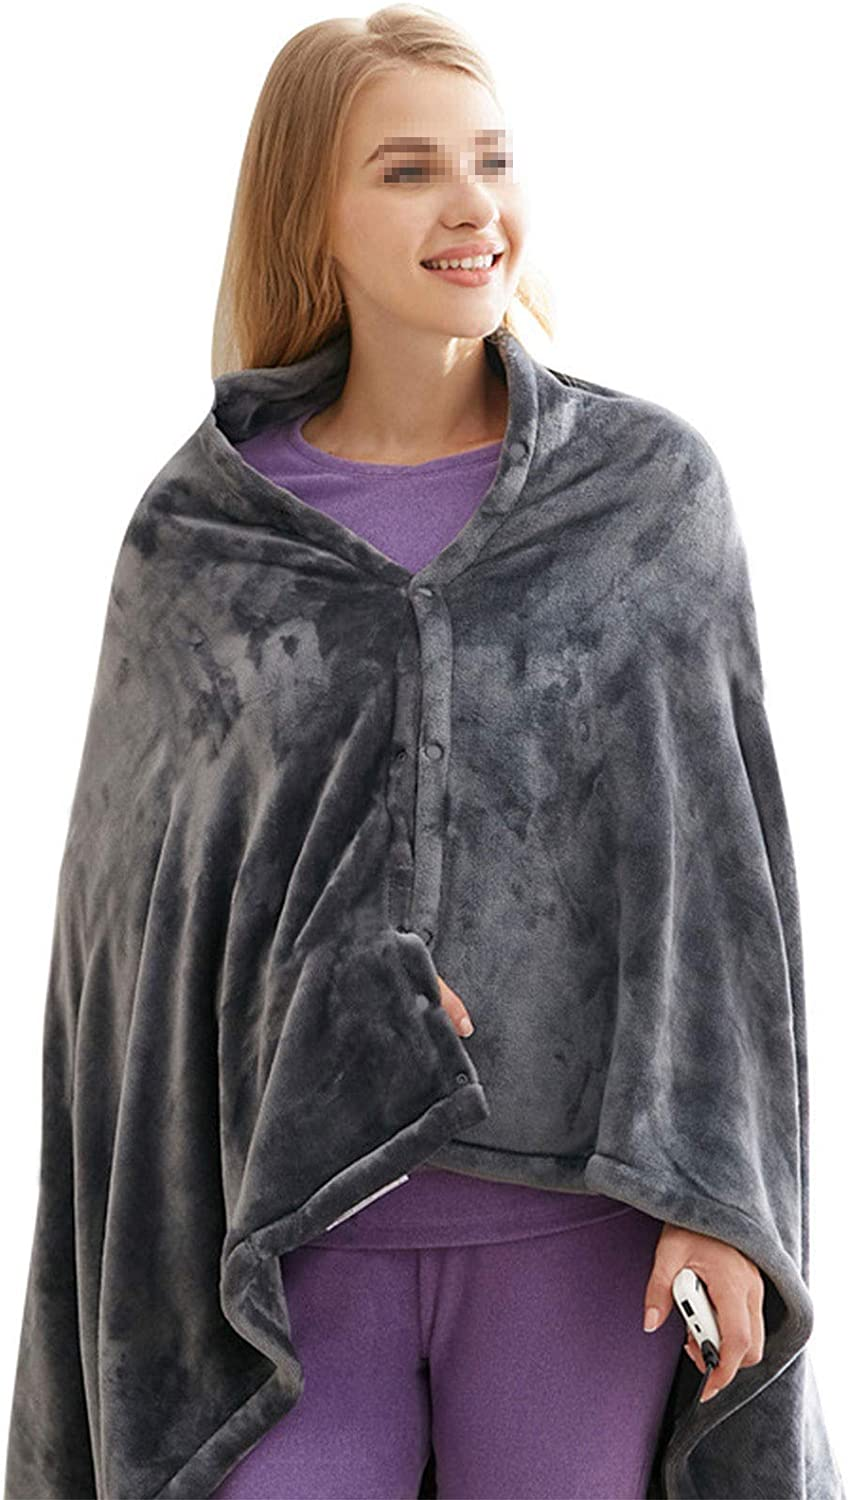 TWW Electric Outlet sale feature Heating Shawl Cold Protection Heat NEW before selling